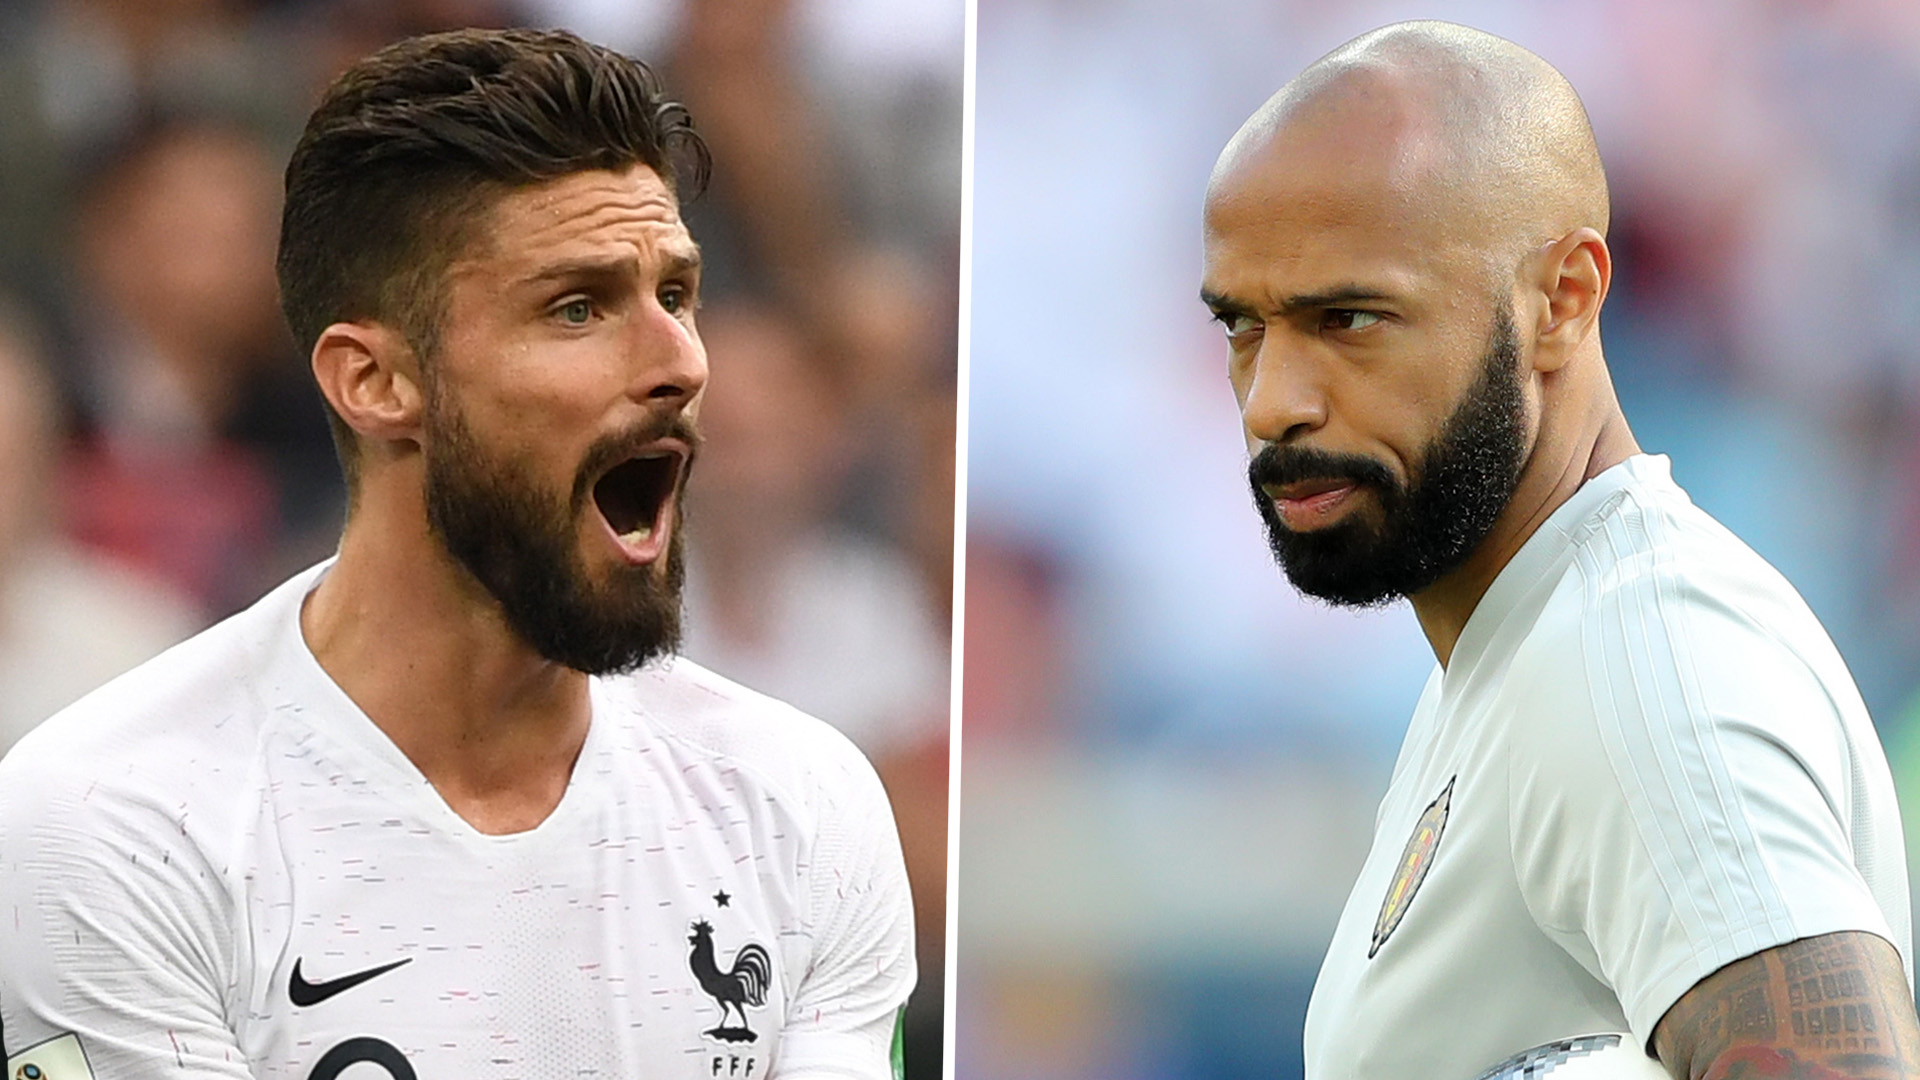 Belgium assistant coach Thierry Henry in the 'wrong camp', says Giroud